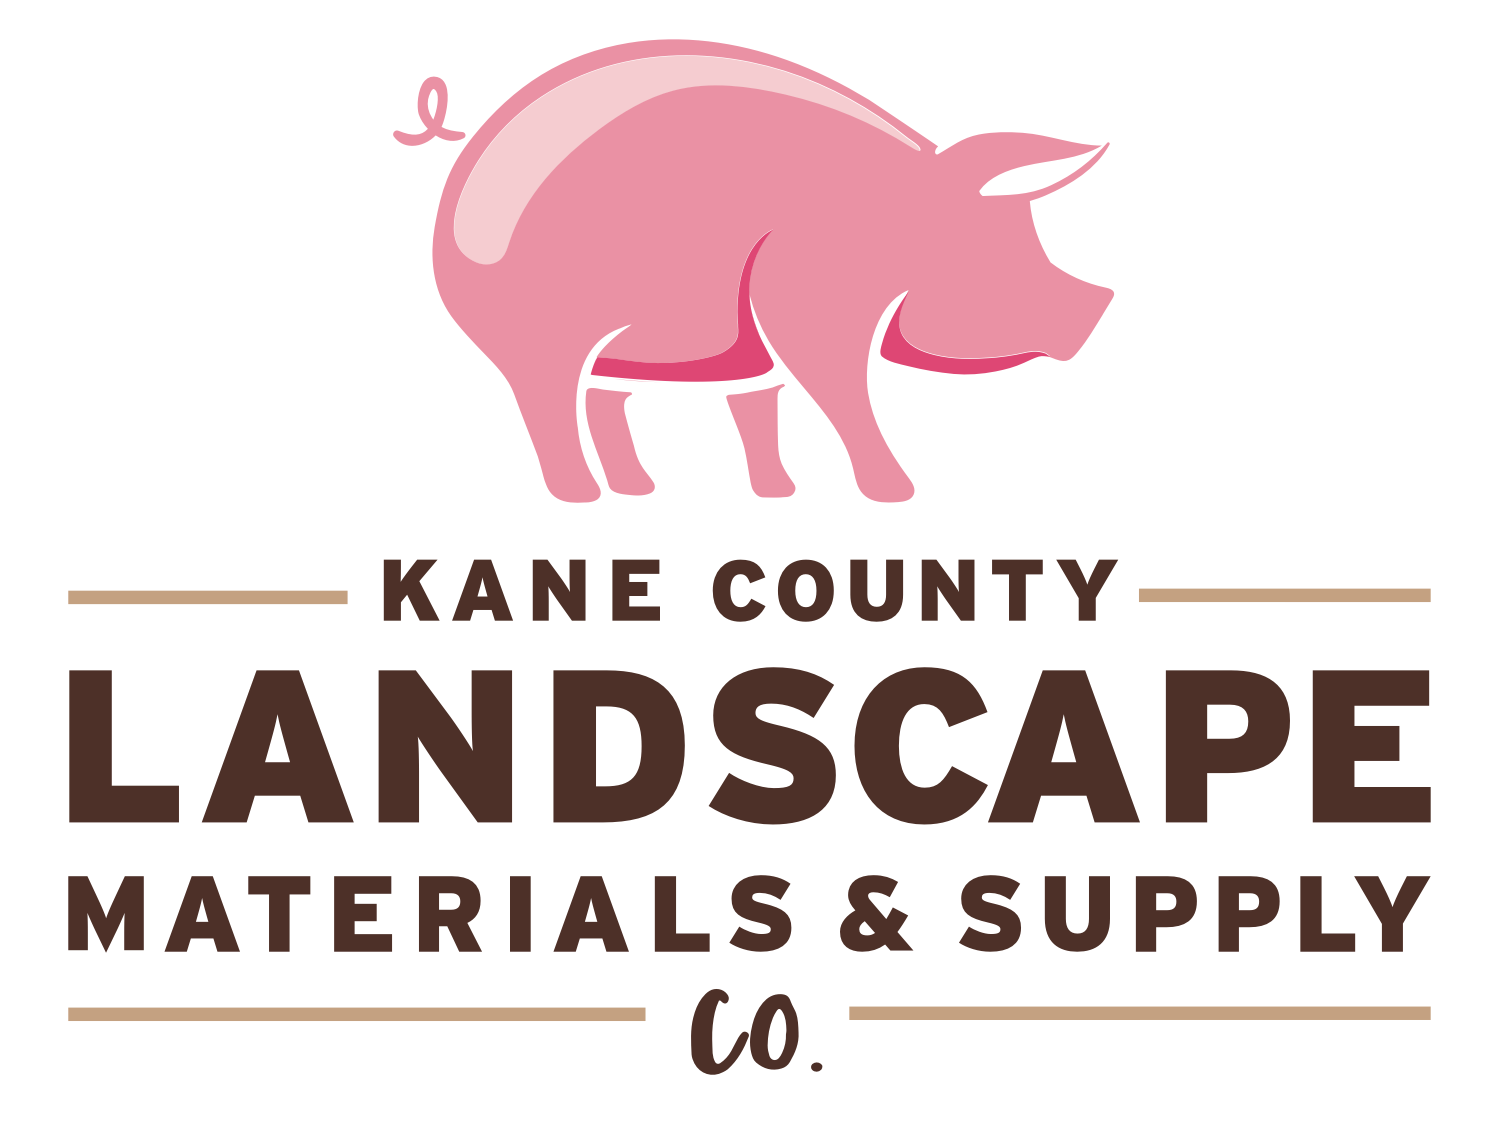 Kane County Landscape Materials and Supply